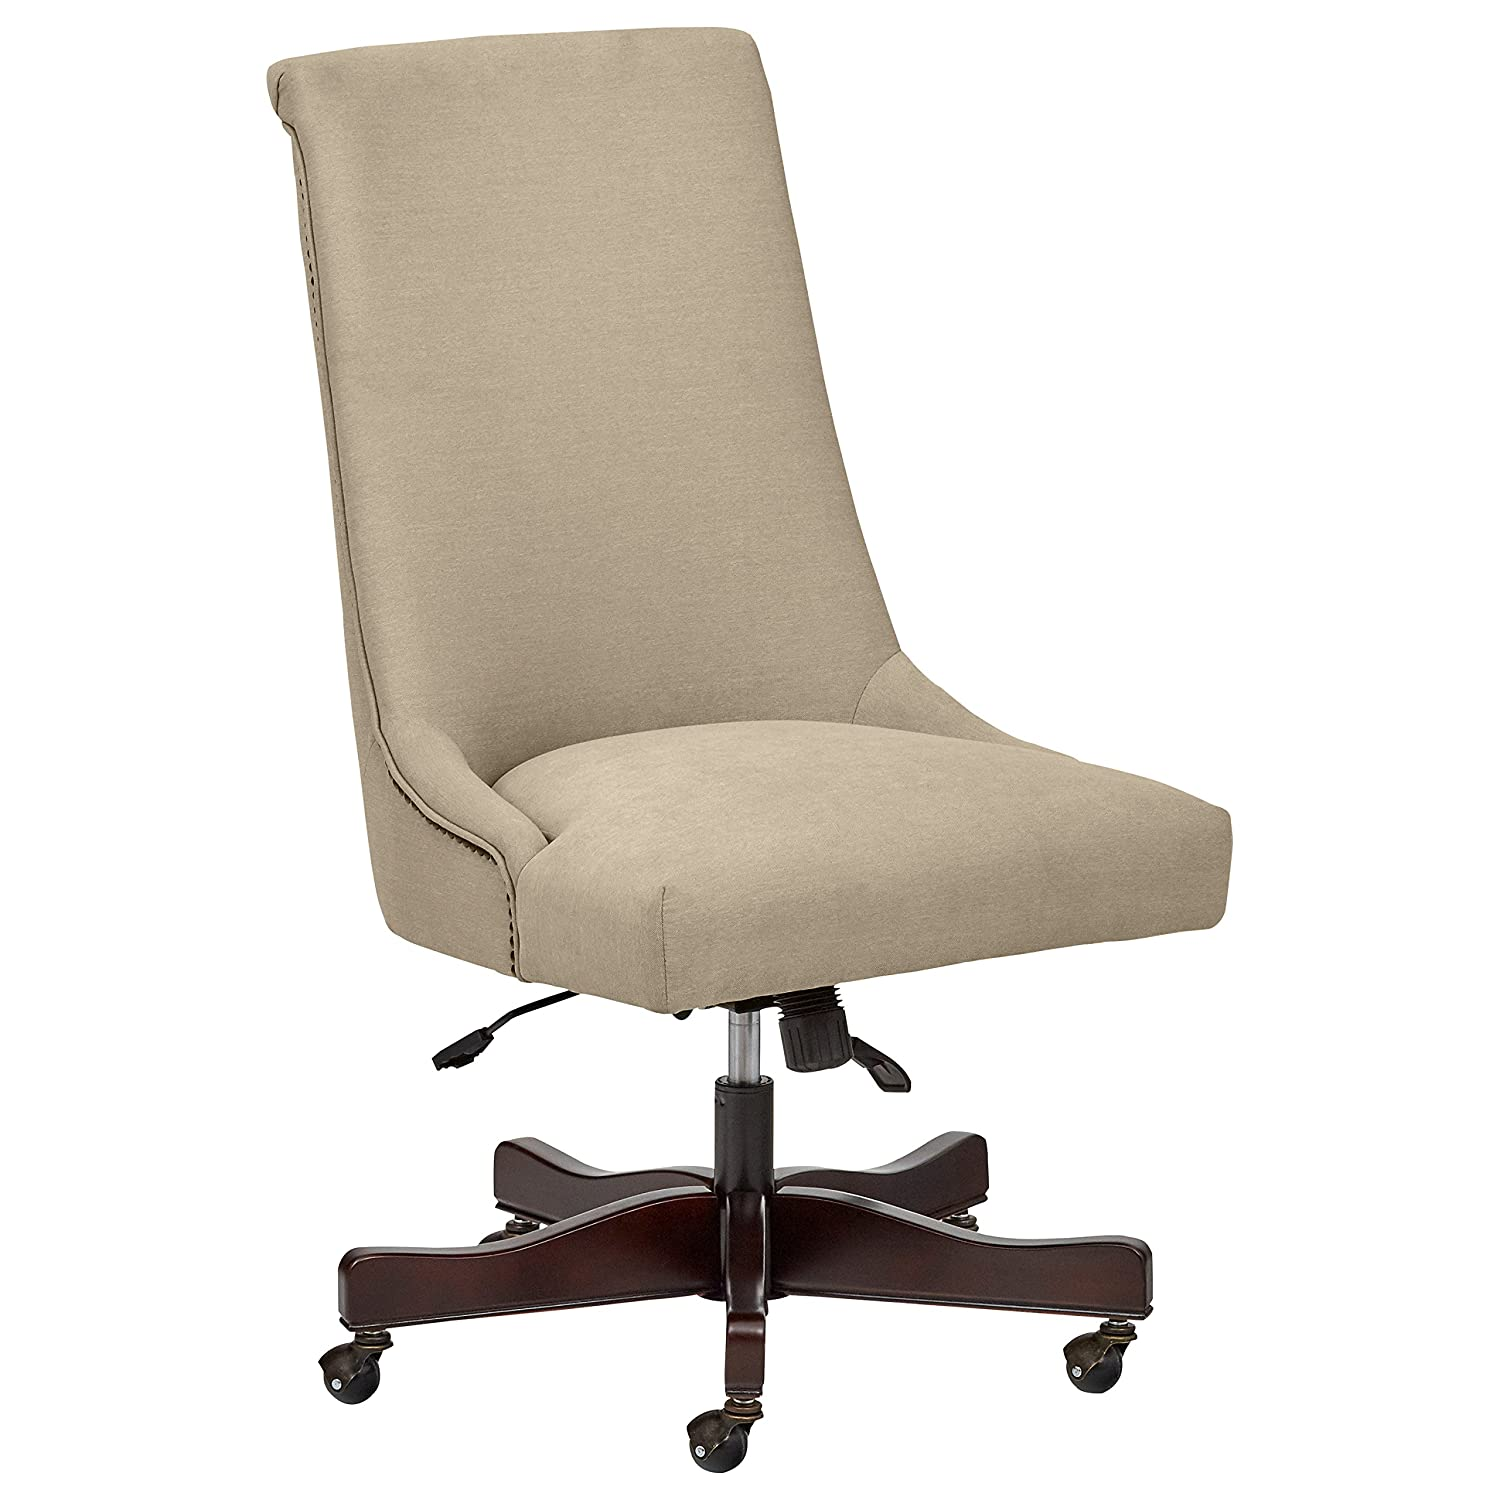 Stone & Beam Nailhead Swivel Office Chair with Wheels, 28.4